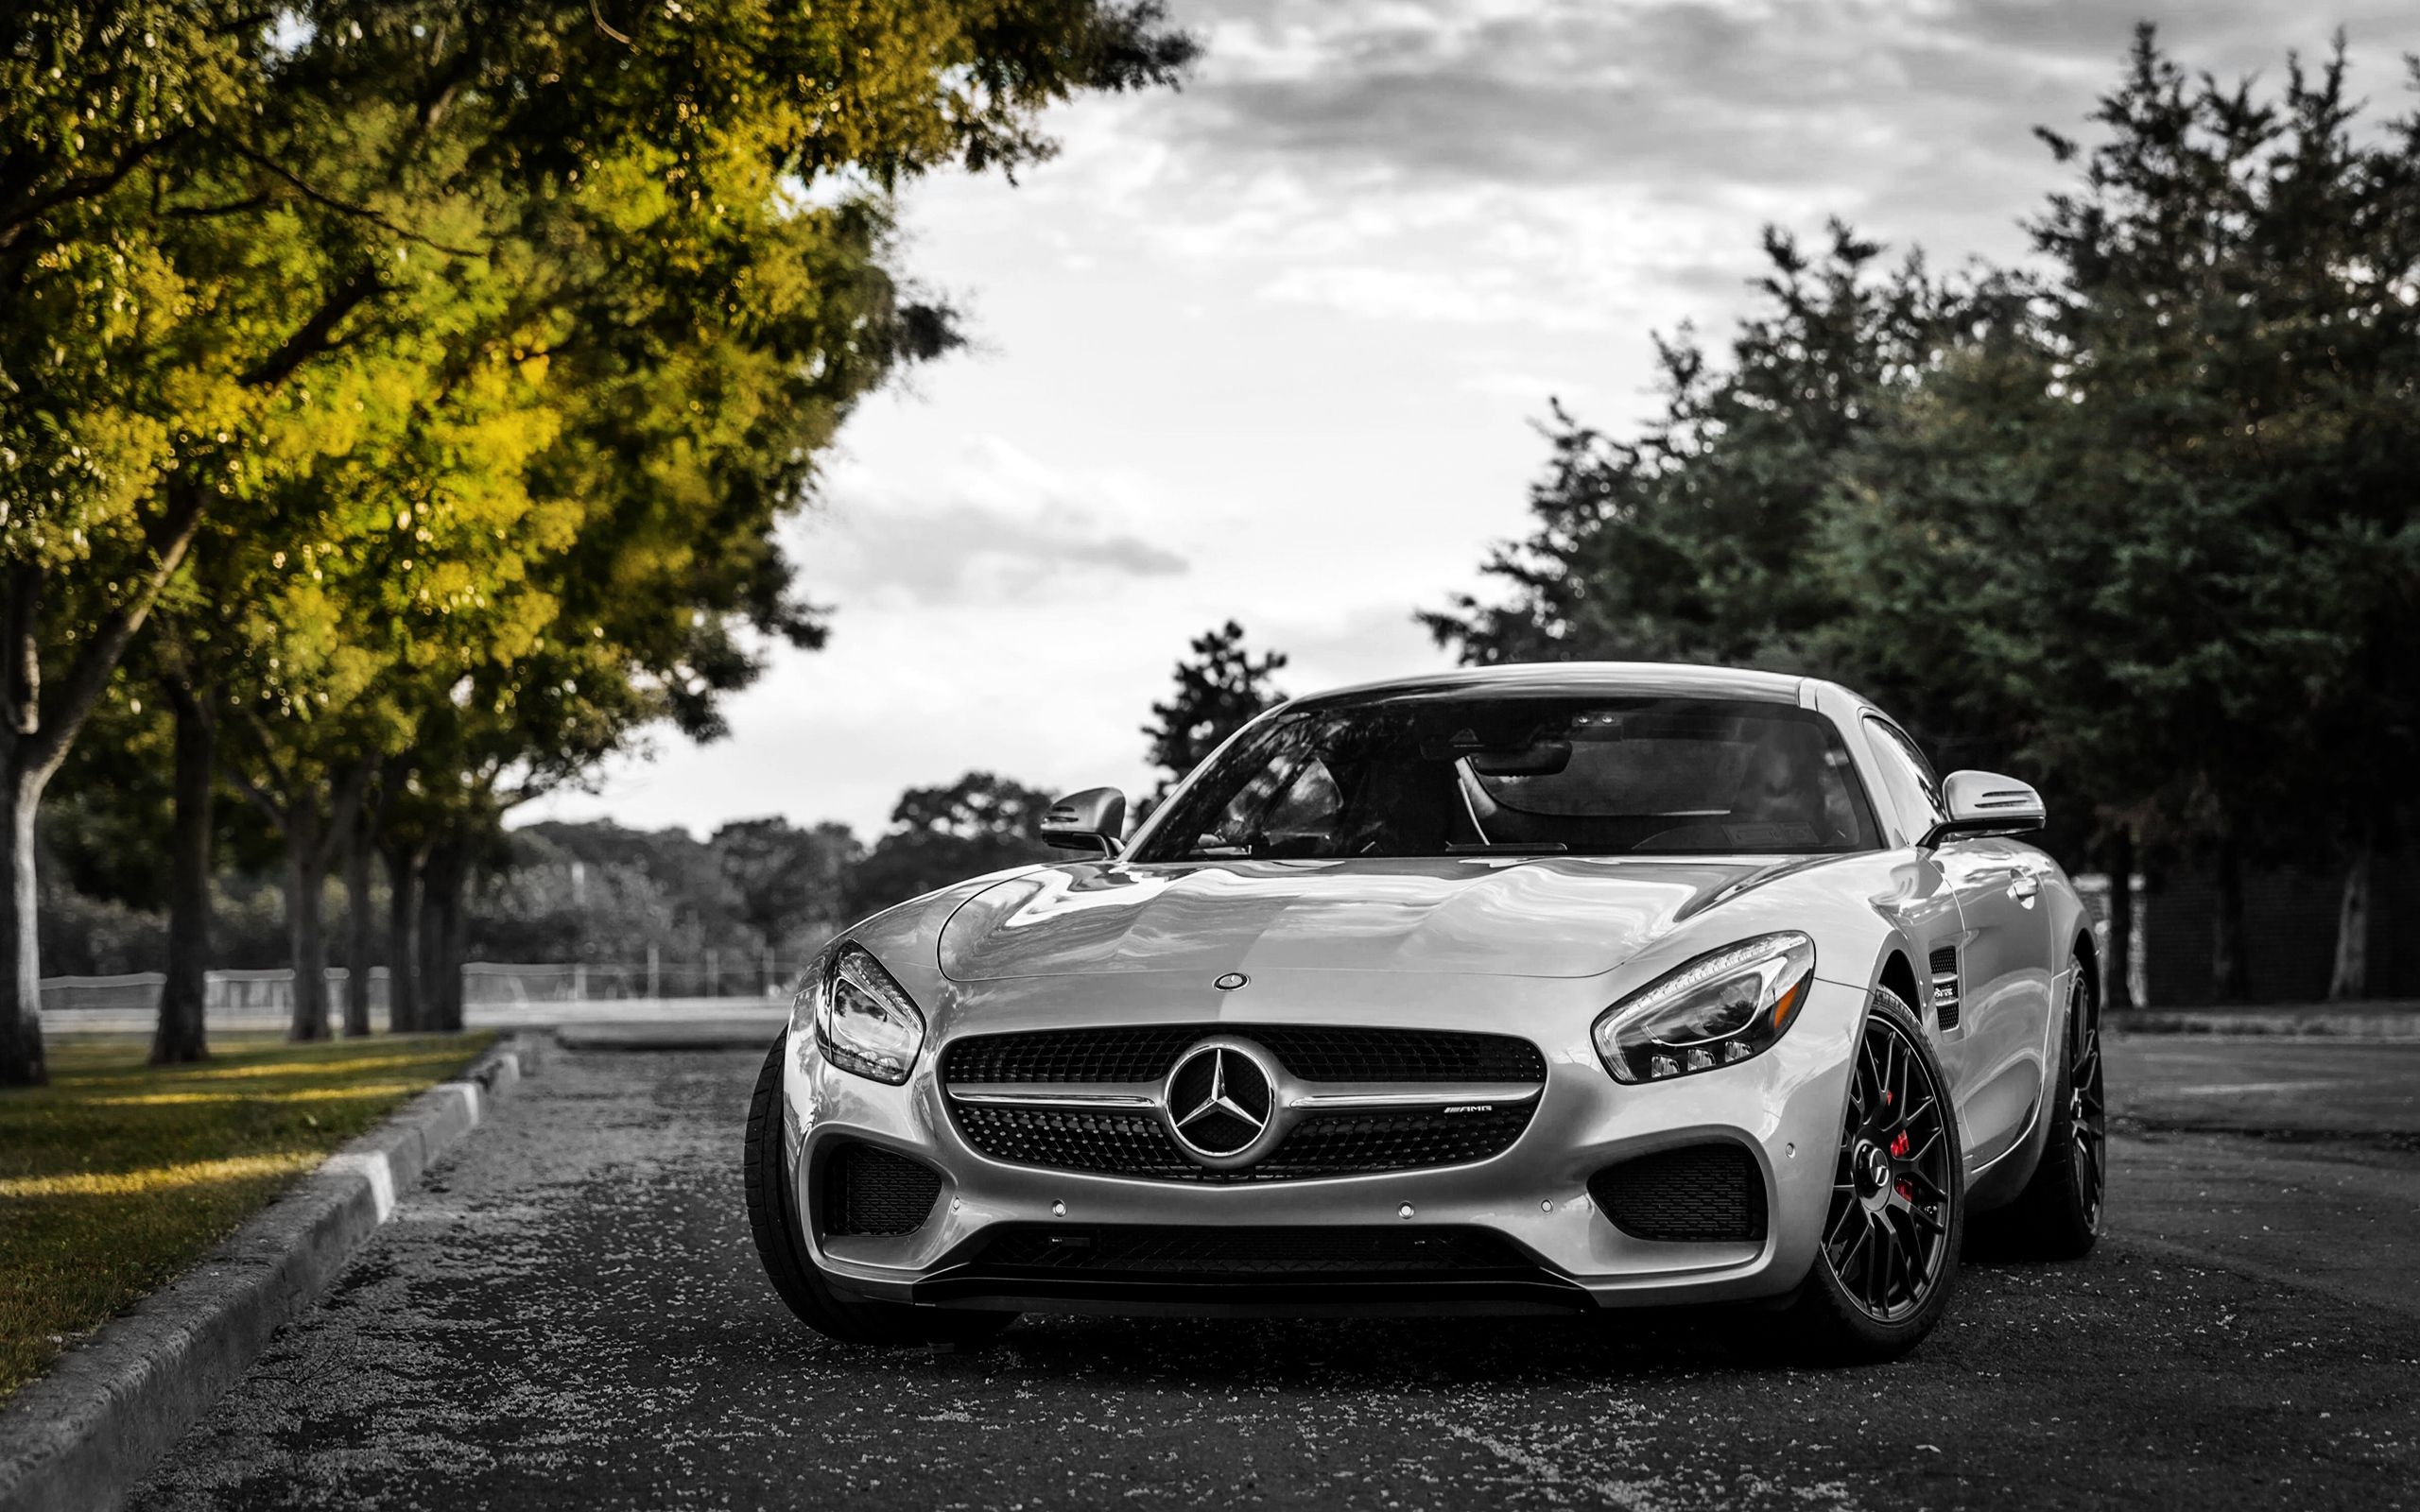 100601 download wallpaper Cars, Front View, Mercedes-Benz, Silver, Silvery, Gt3, C190 screensavers and pictures for free